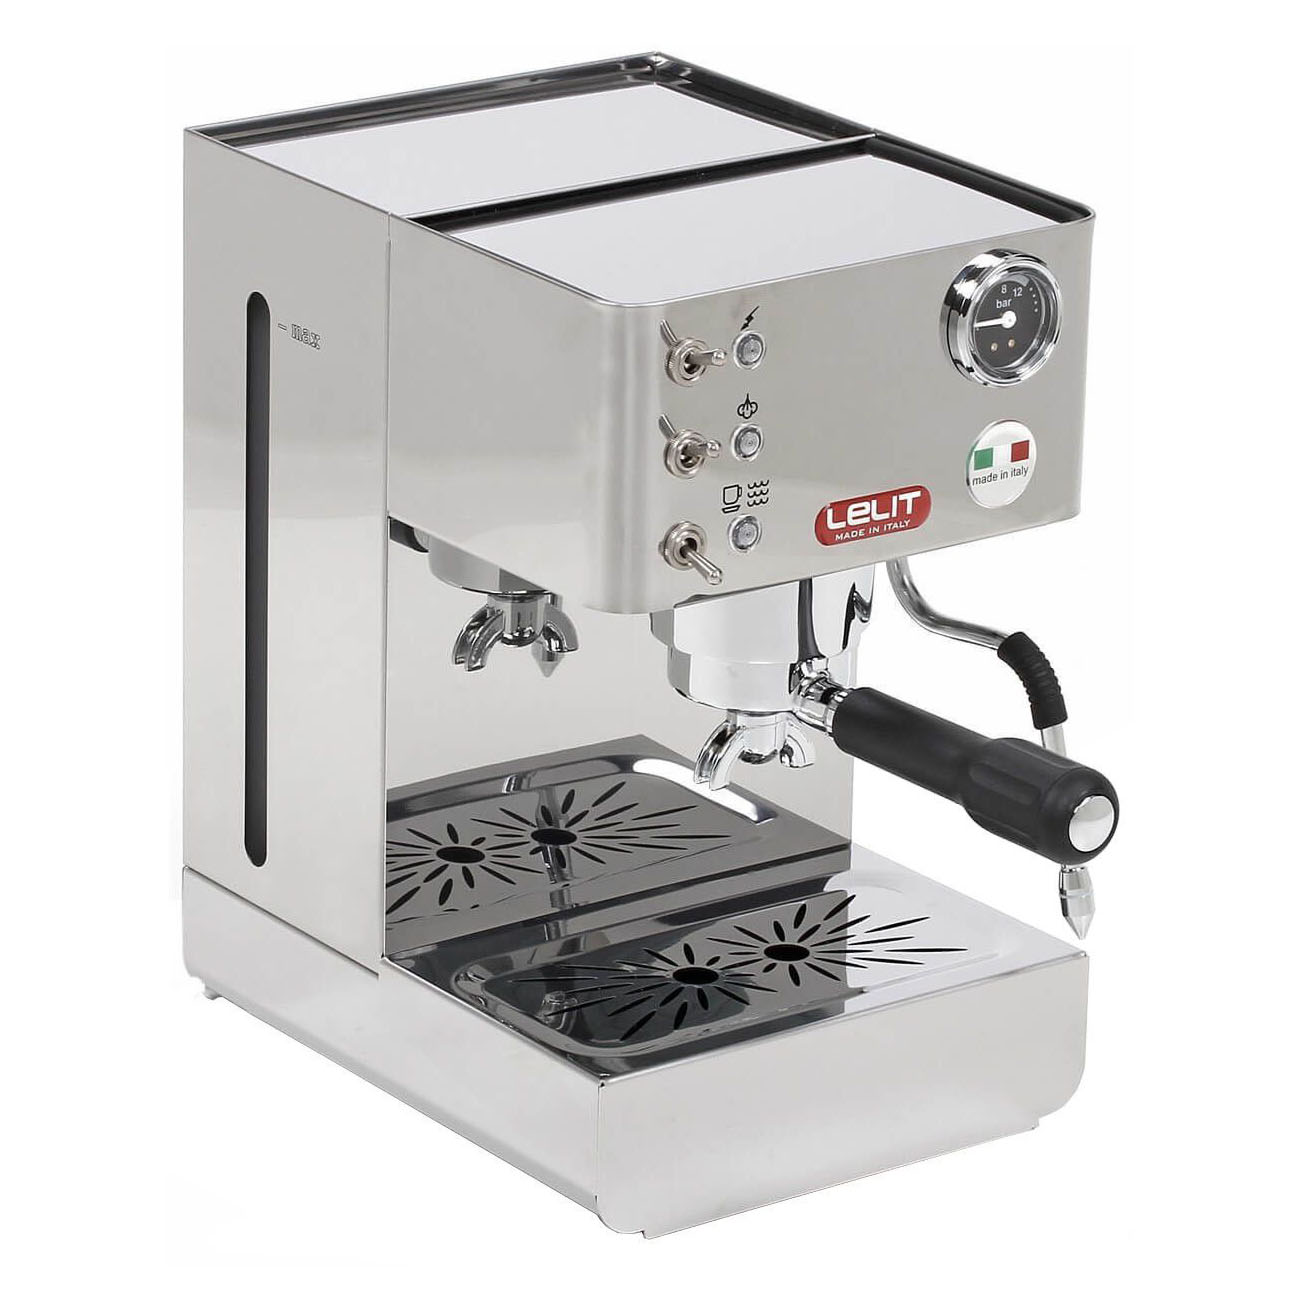 Espressor manual Lelit PL 41 LEM, 1050 W, 2 L, 15 bar, manometru